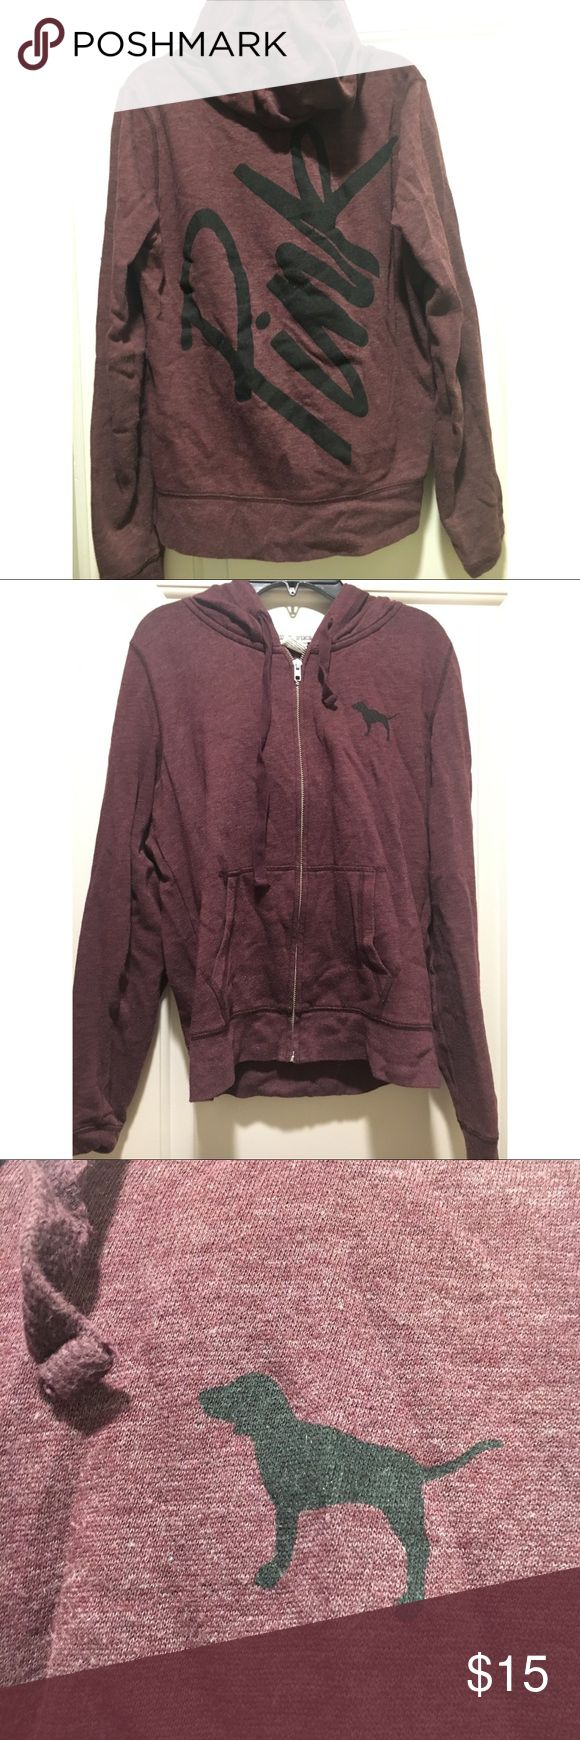 Victoria's Secret PINK Burgundy Hoodie Brand: PINK Size: small Condition: gently worn  Shipping: next business day  Bundle: discounts available  ~Make offers~  #victoriassecret #hoodie #burgundy #cute #fashion #comfortable #fall #small #winter #relax #gym #workout #pink #makeoffers #bundletosave #dressitdown #sweatshirts PINK Victoria's Secret Tops Sweatshirts & Hoodies